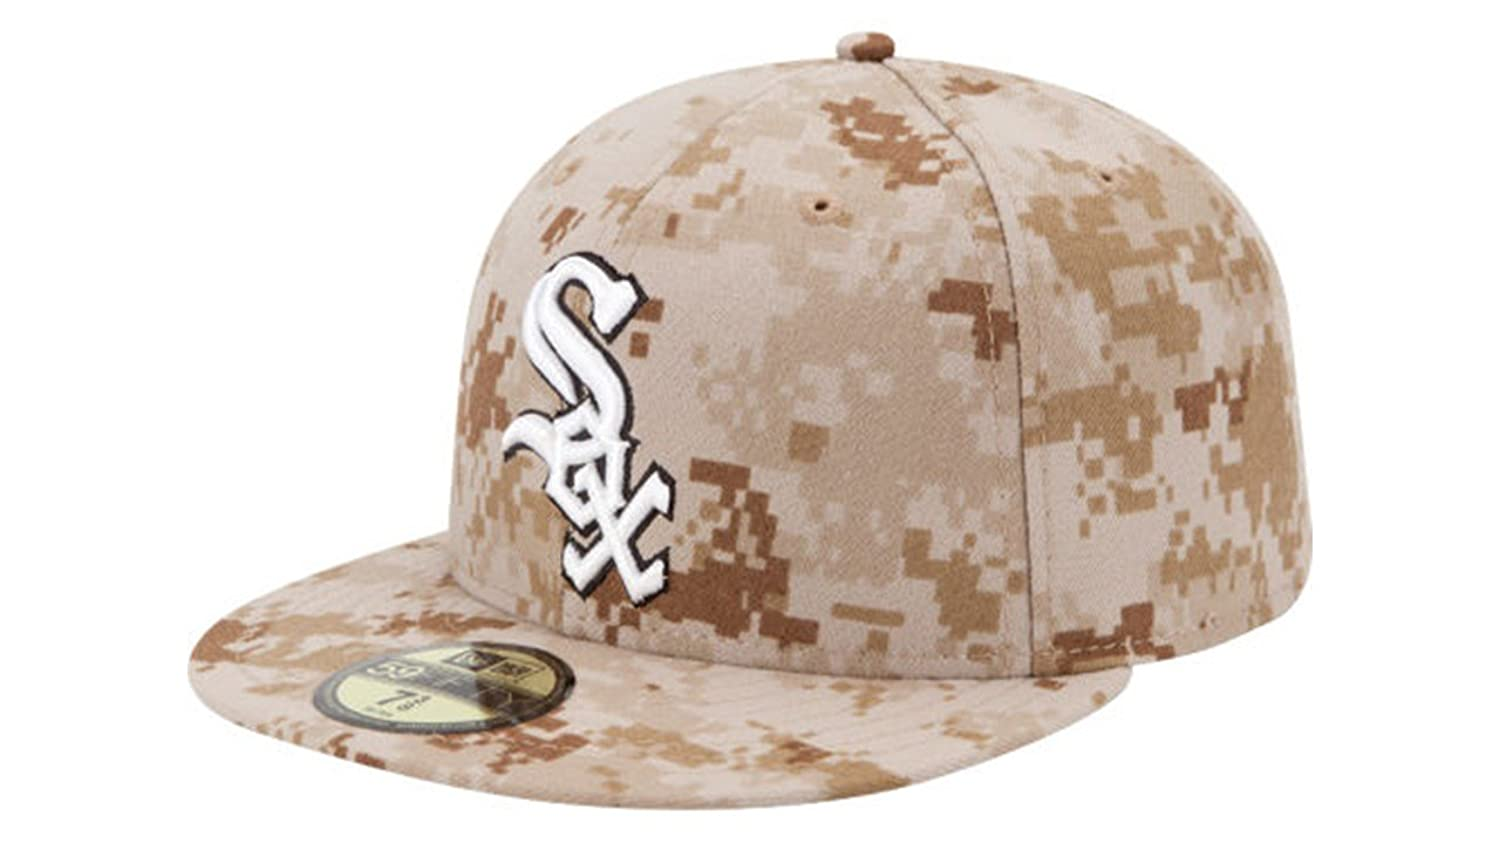 Chicago White Sox Men s New Era MLB Baseball Memorial Day Stars   Stripes  59FIFTY Fitted Cap - Camo (7) at Amazon Men s Clothing store  50d61a66ef0